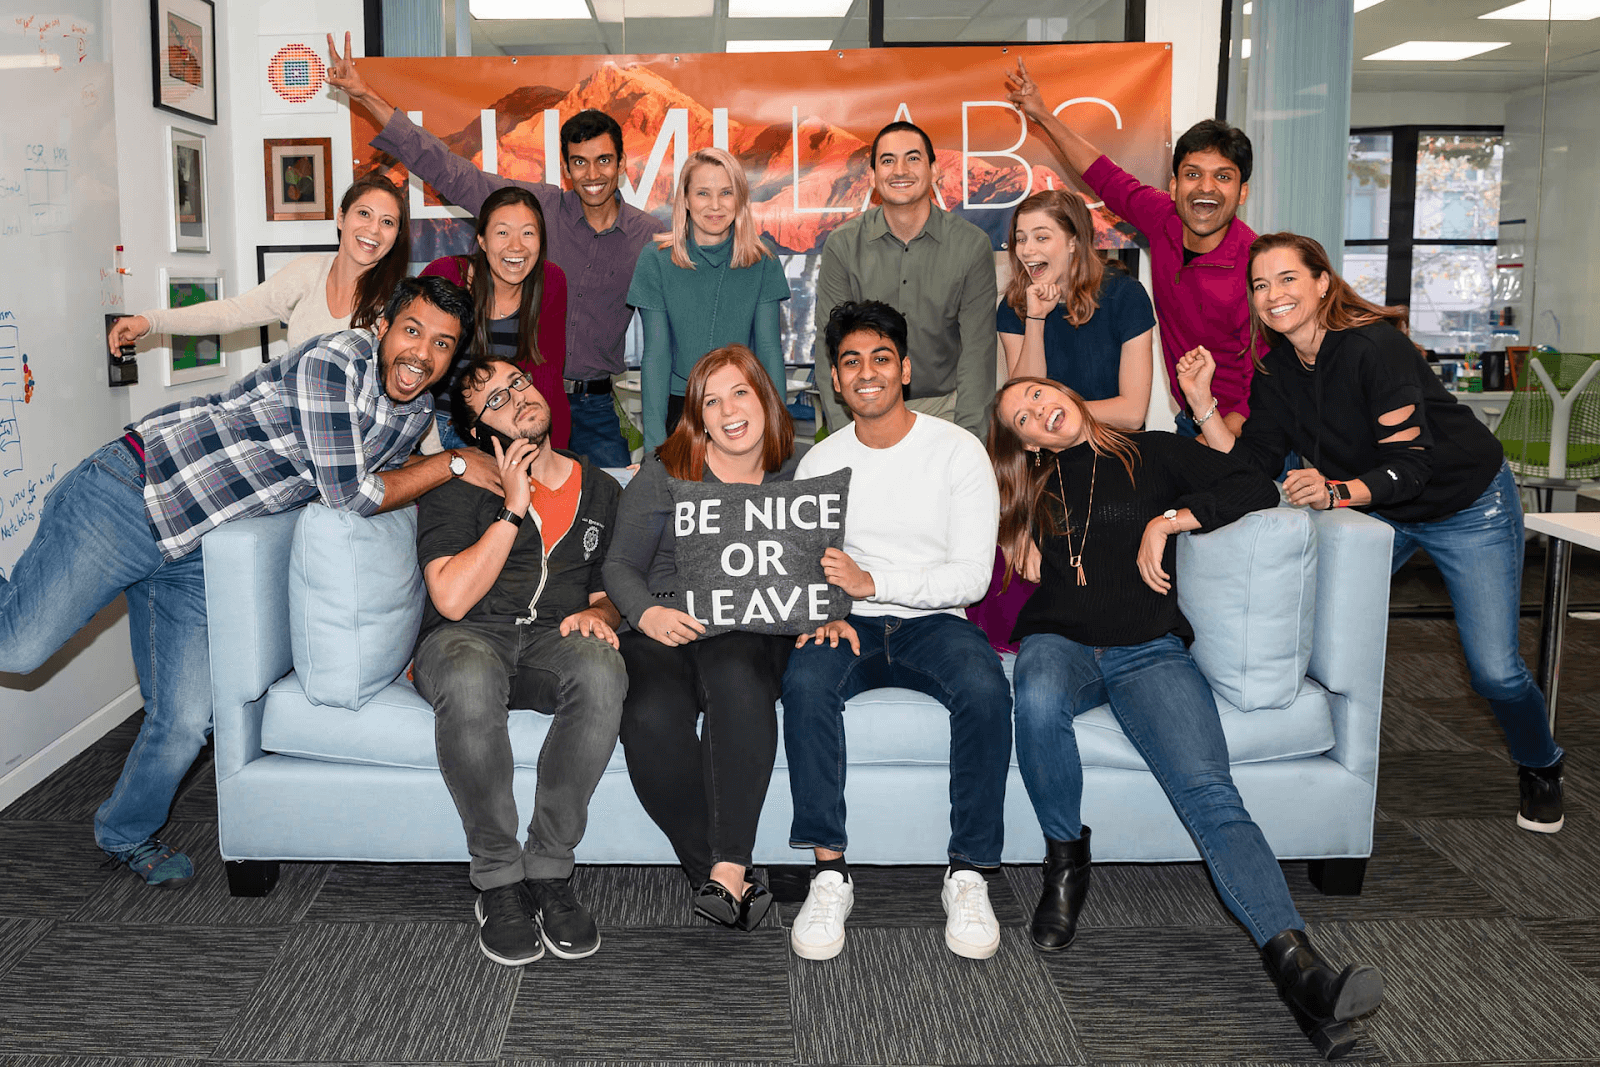 Marissa Mayer, self-professed introvert leader, with her latest team at LumiLabs. (Photo: LumiLabs)